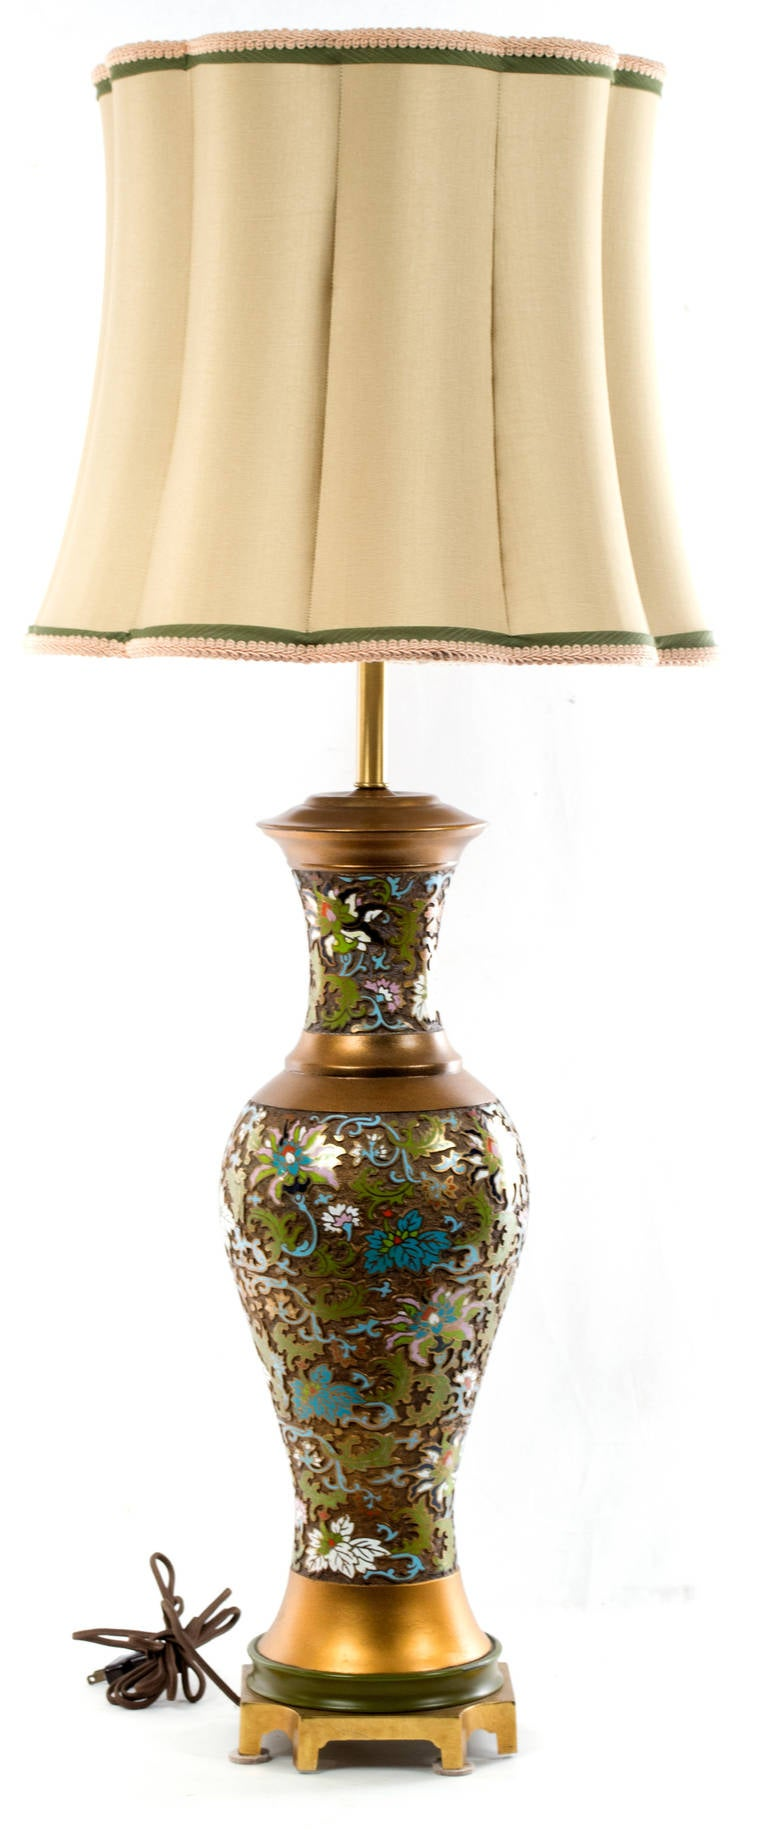 A gilt bronze cloisonné lamp topped with an embroidered silk shade, made in China during the middle of 20th century.